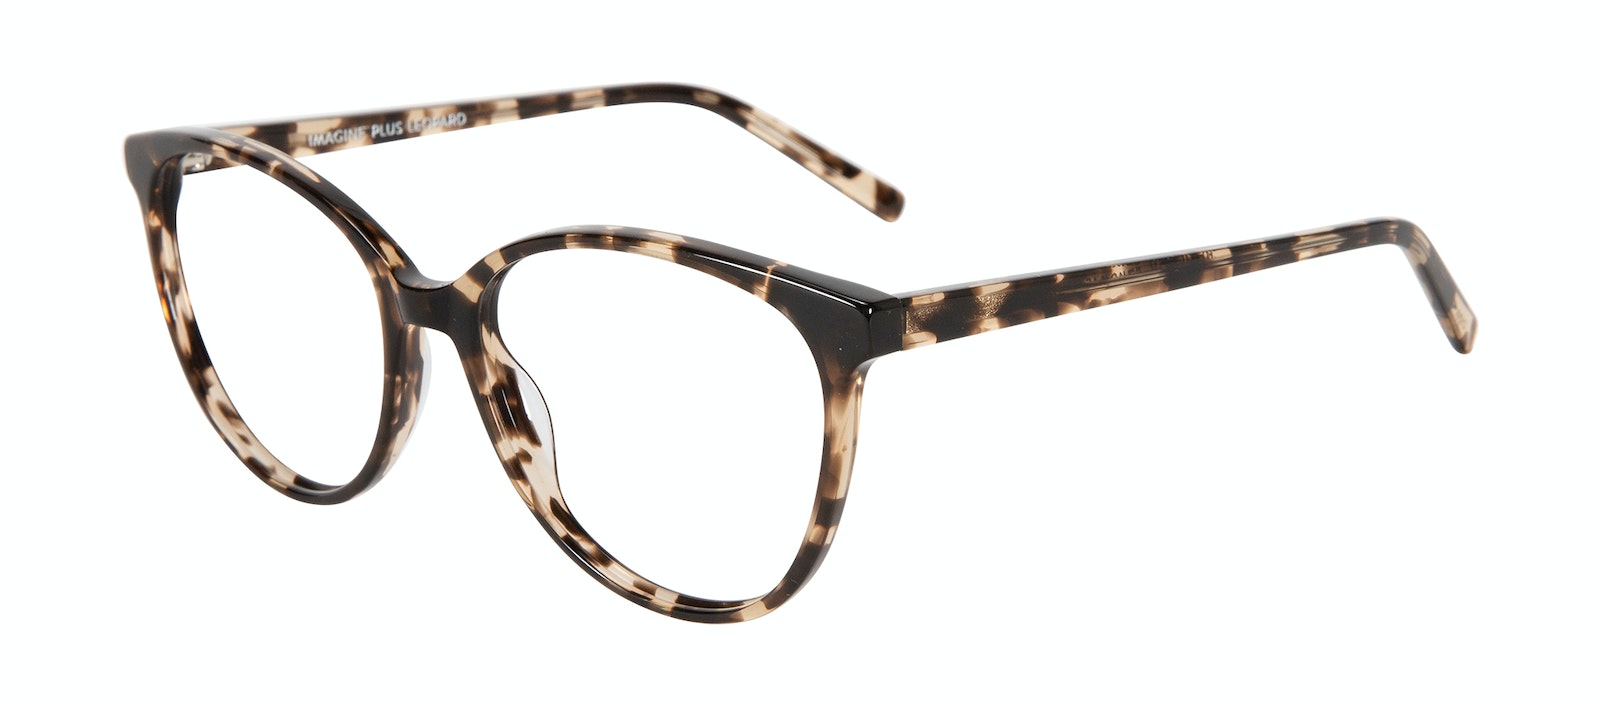 Affordable Fashion Glasses Cat Eye Eyeglasses Women Imagine XL Leopard Tilt